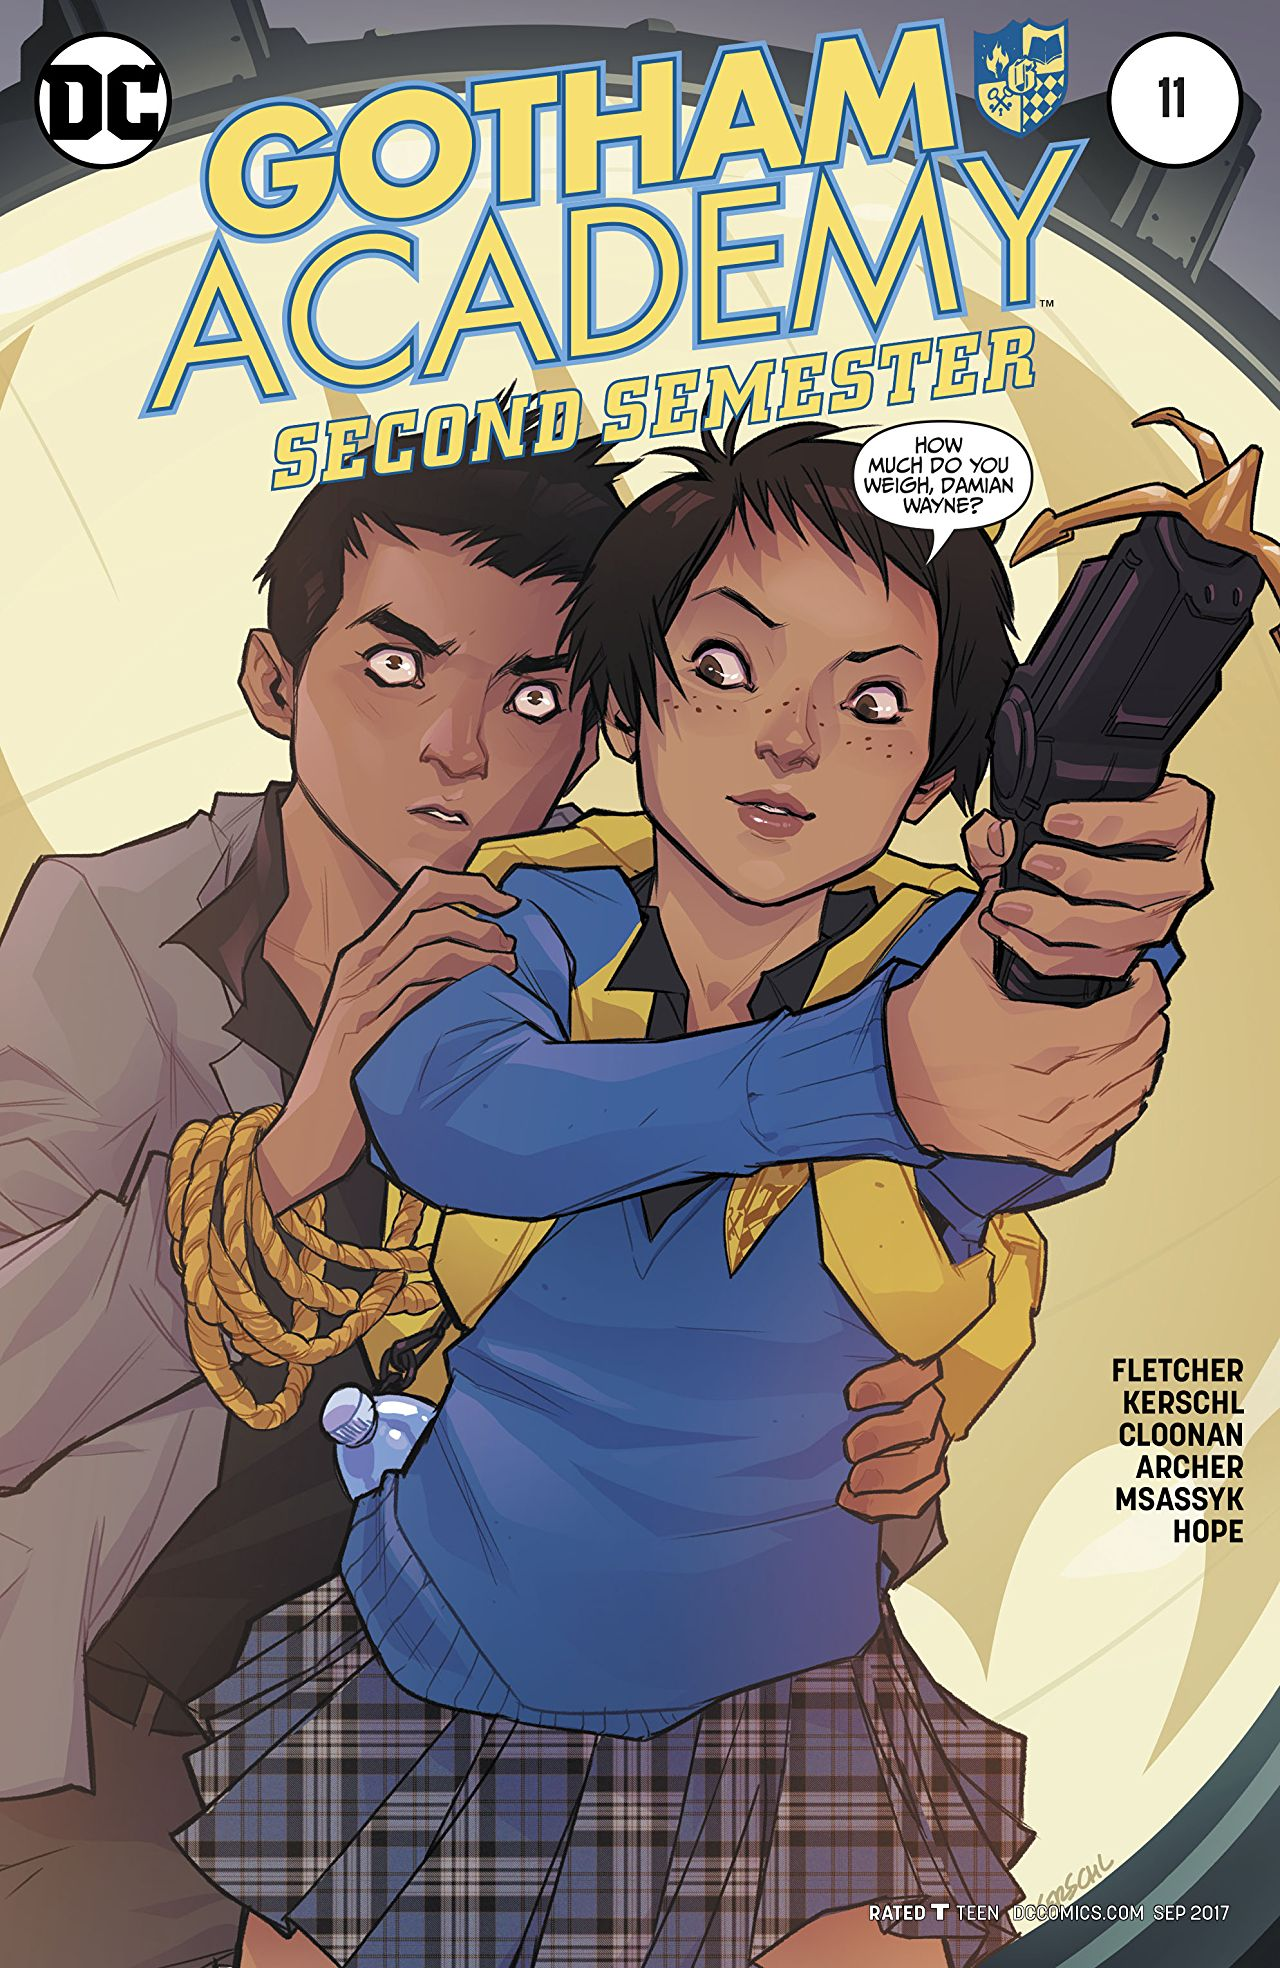 Gotham Academy: Second Semester Vol 1 11